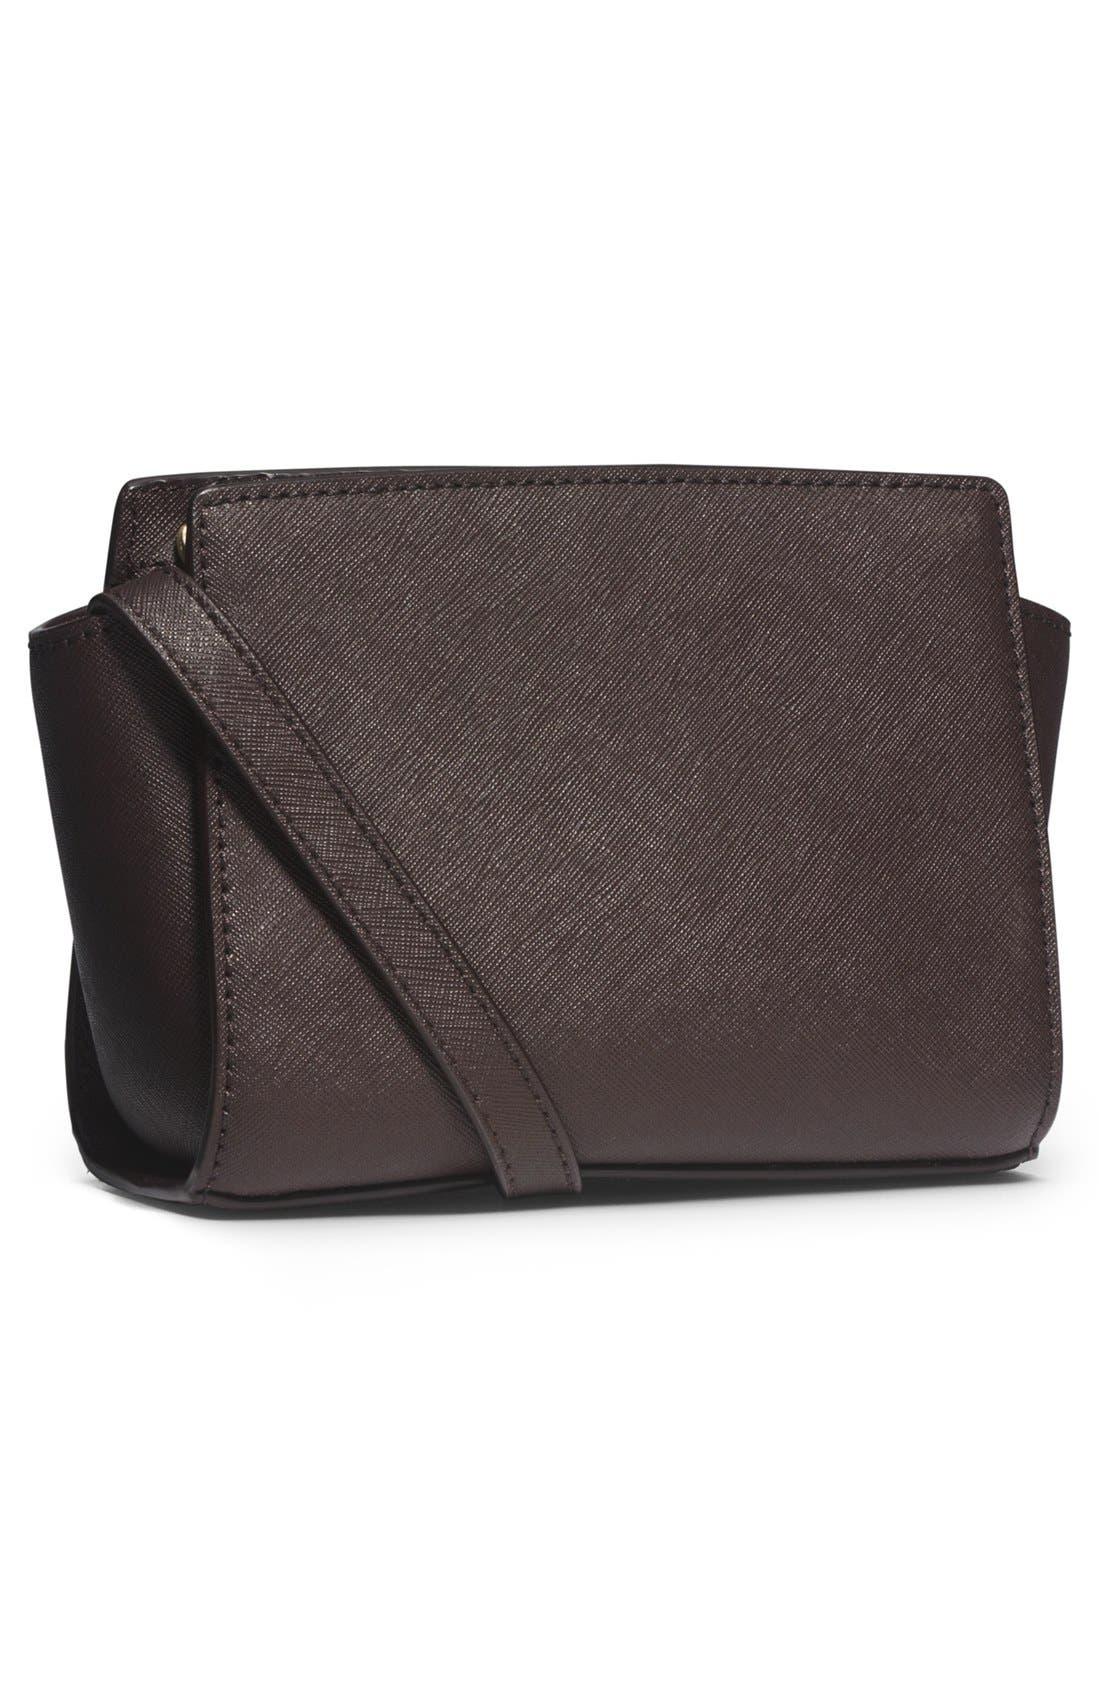 Alternate Image 3  - MICHAEL Michael Kors 'Mini Selma' Calf Hair & Leather Messenger Bag